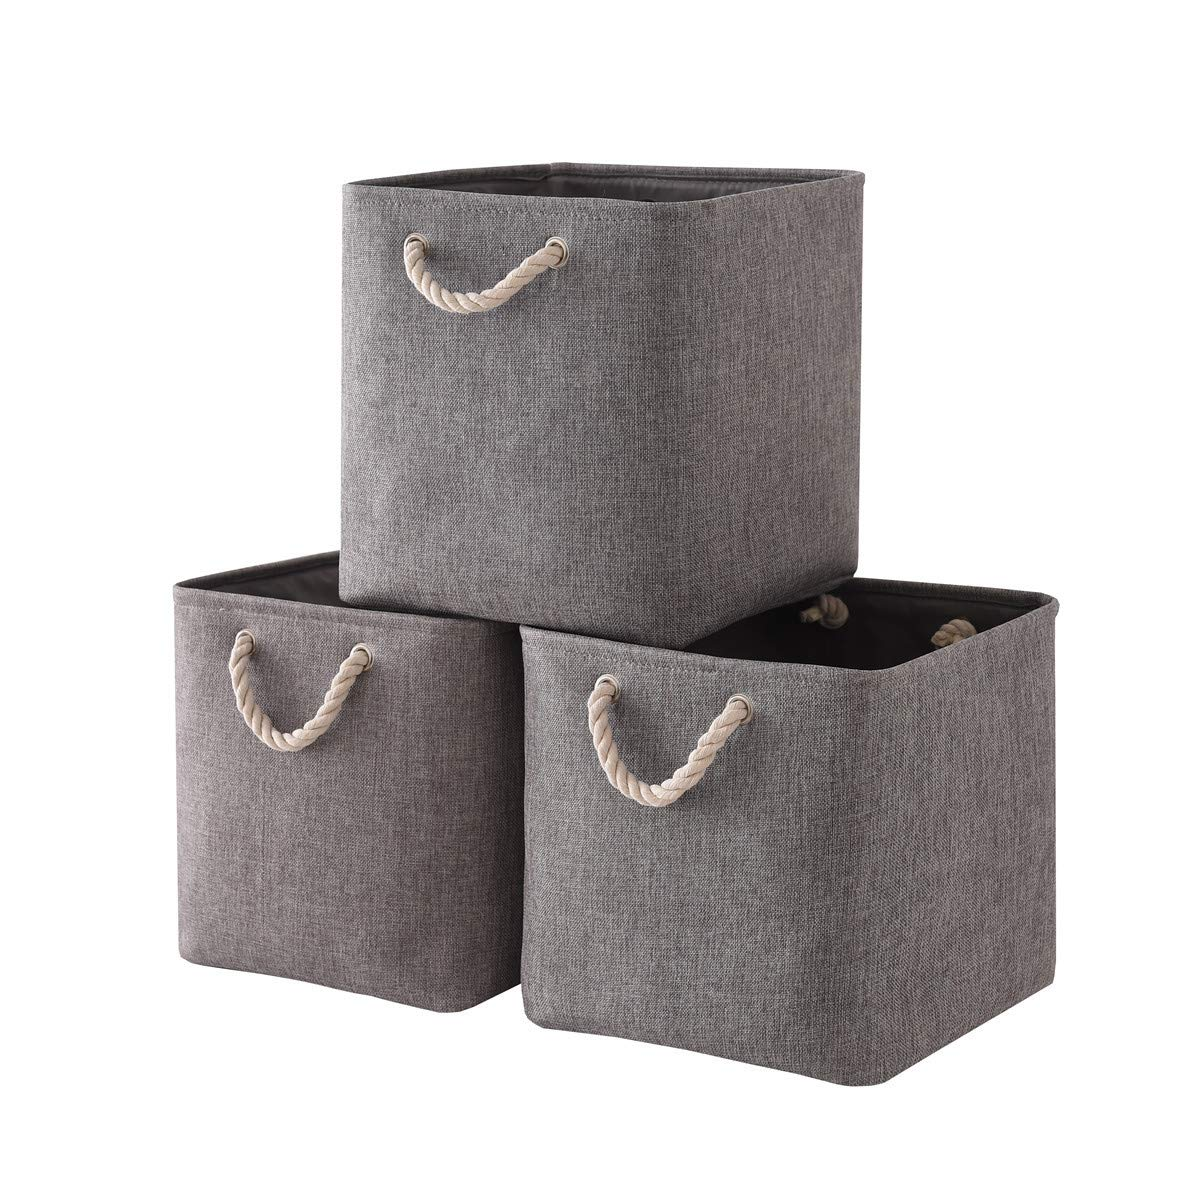 Syeeiex Collapsible Storage Cubes, 13 inch Cube Storage Bins,Fabric Storage Basket for Organizing Shelf Nursery Home Closet (Grey, 3-Packs)